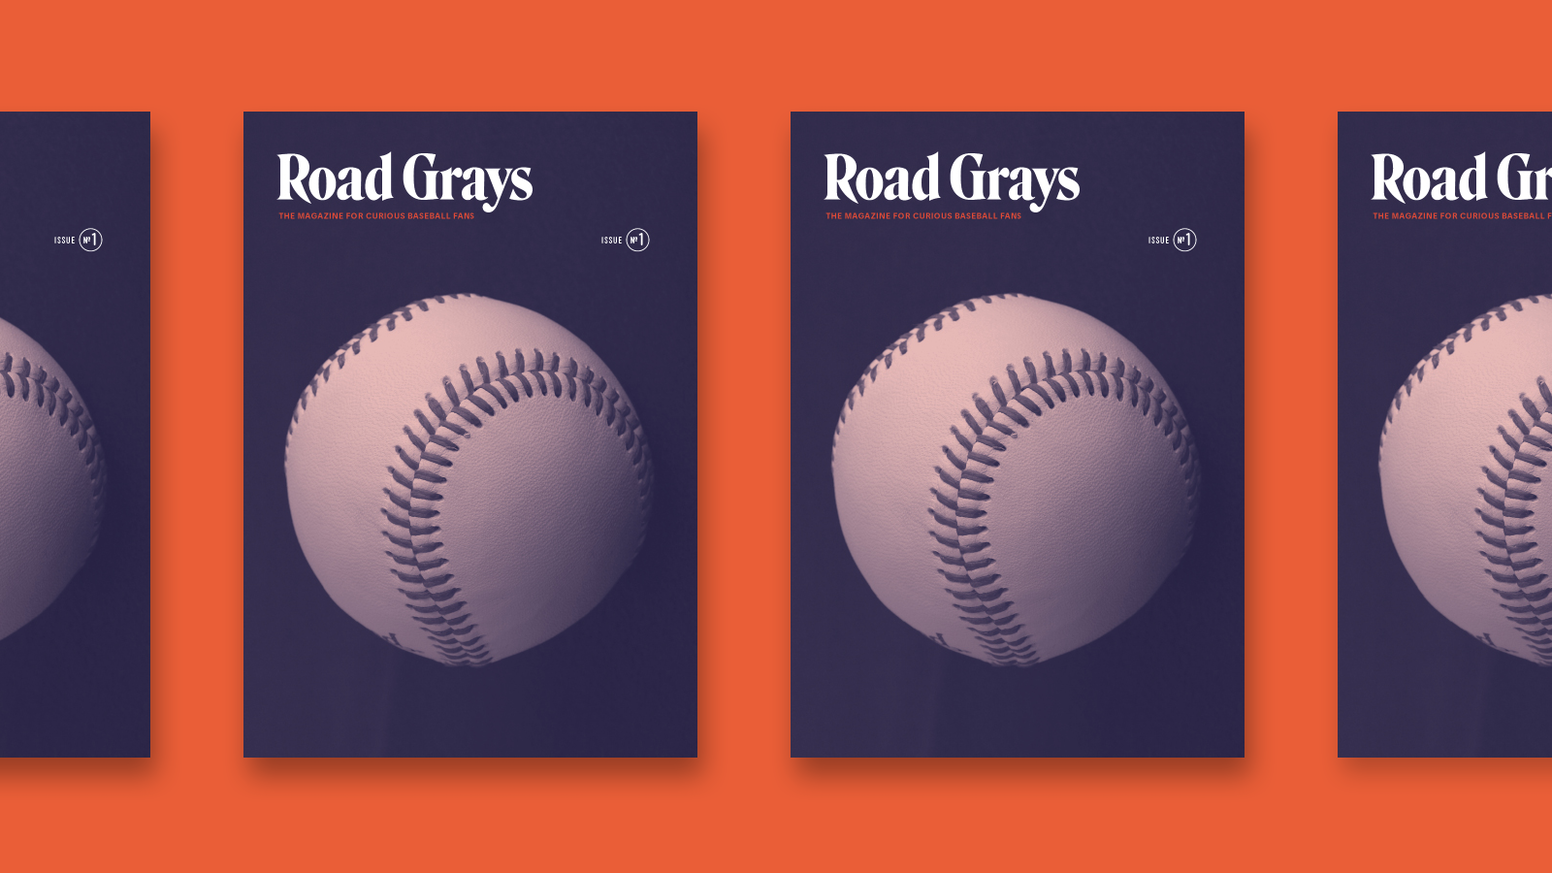 A new print-only independent magazine about baseball, focusing on the human stories behind the game. Issue 1 is out now!